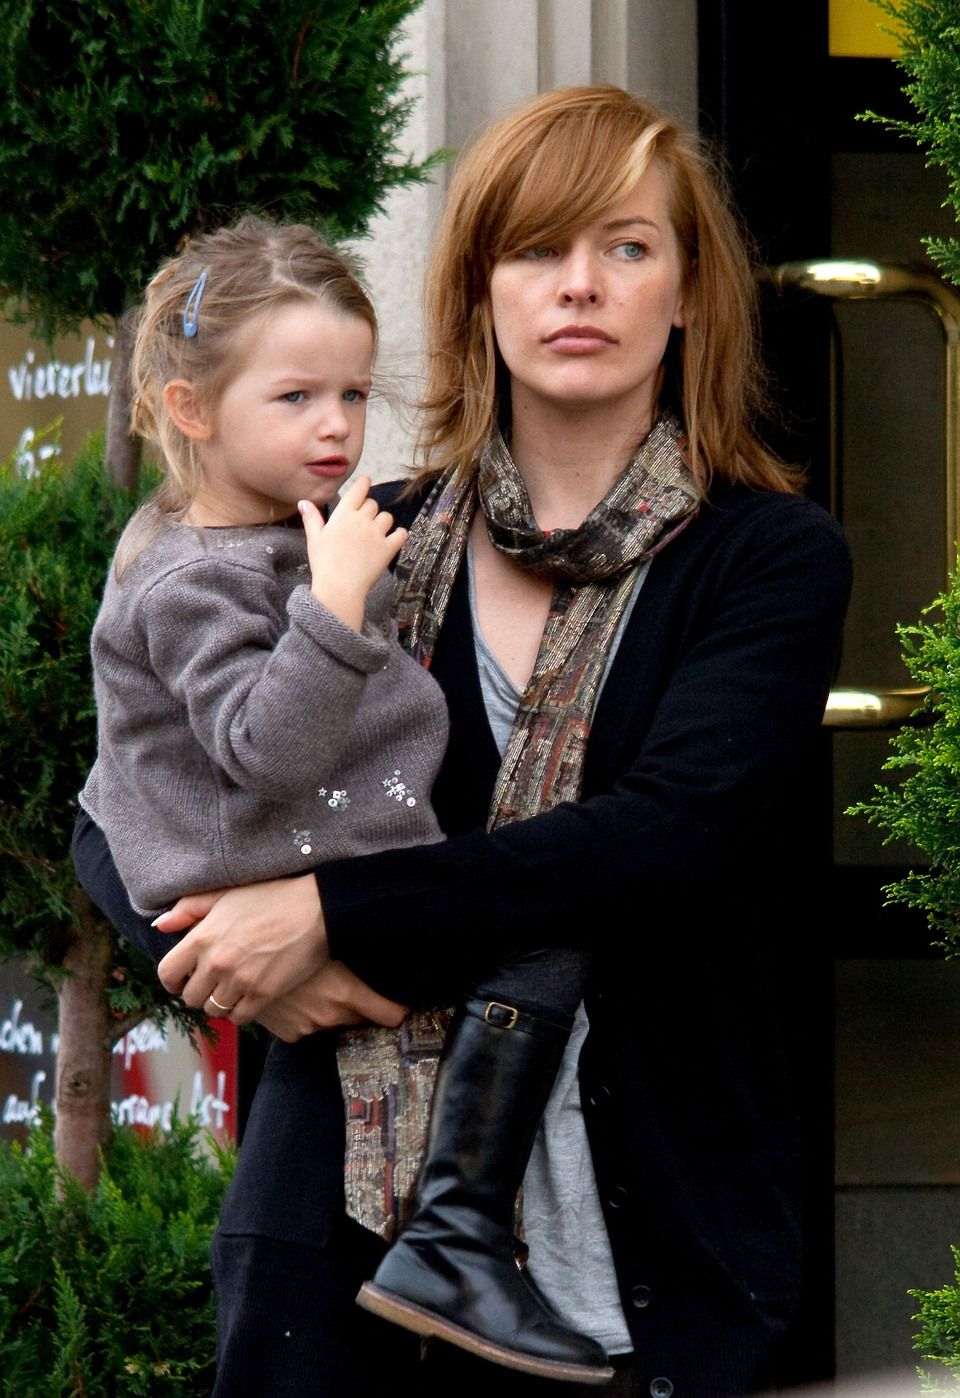 Three princesses: Milla Jovovich and her daughters fascinated the Internet 42